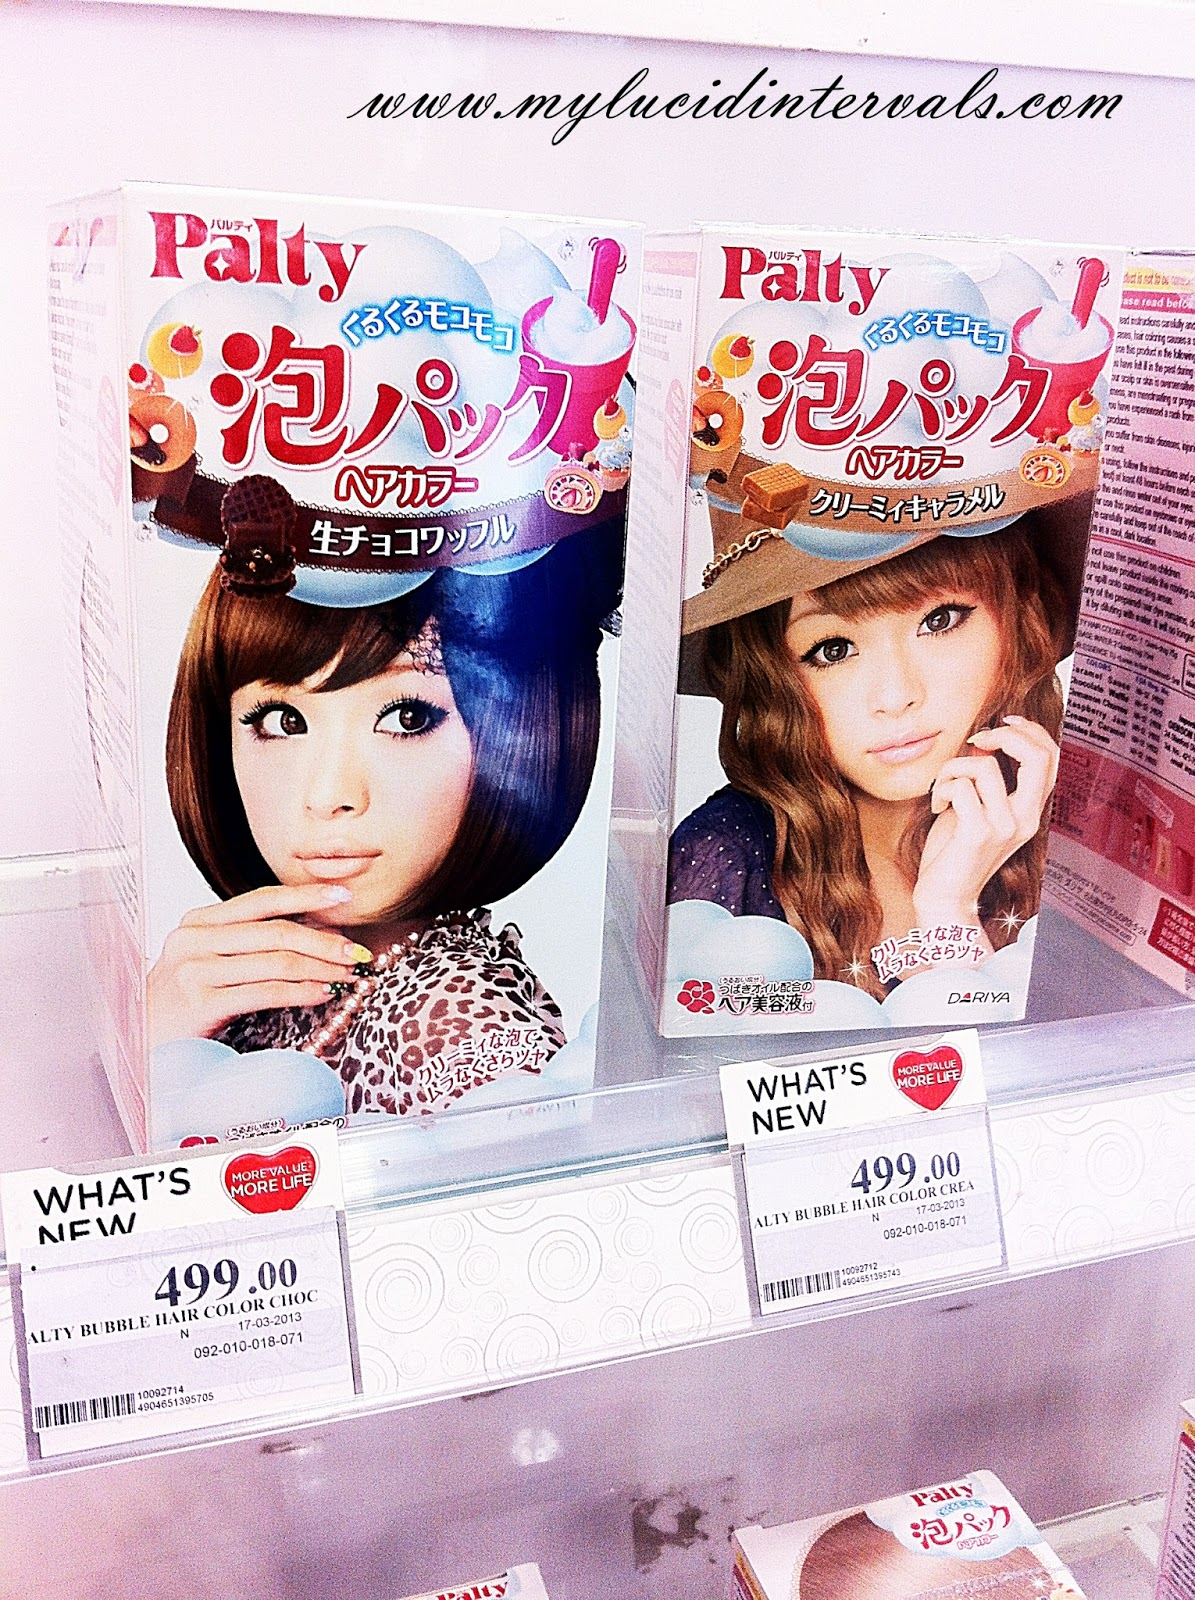 Whats New Palty Bubble Hair Color My Lucid Intervals